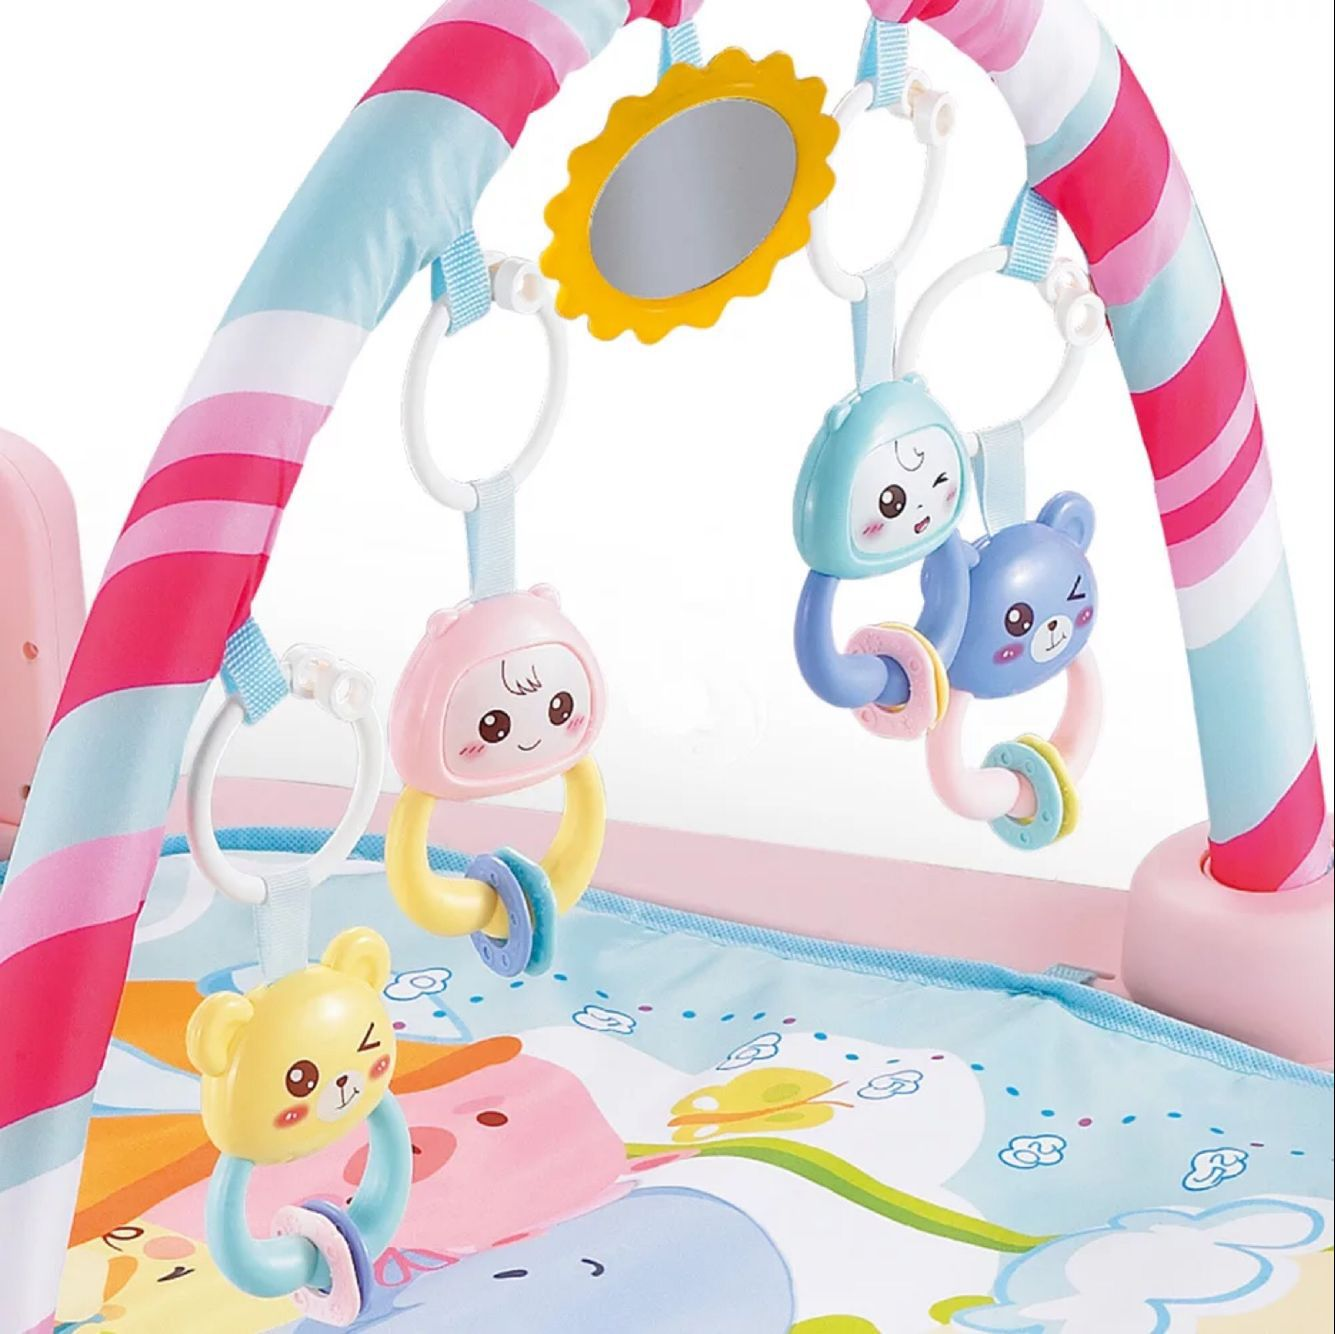 Infant Harmonium Fitness Rack Baby Fitness Mat Game Blanket Pedal Gang Qin Jia Music Toy